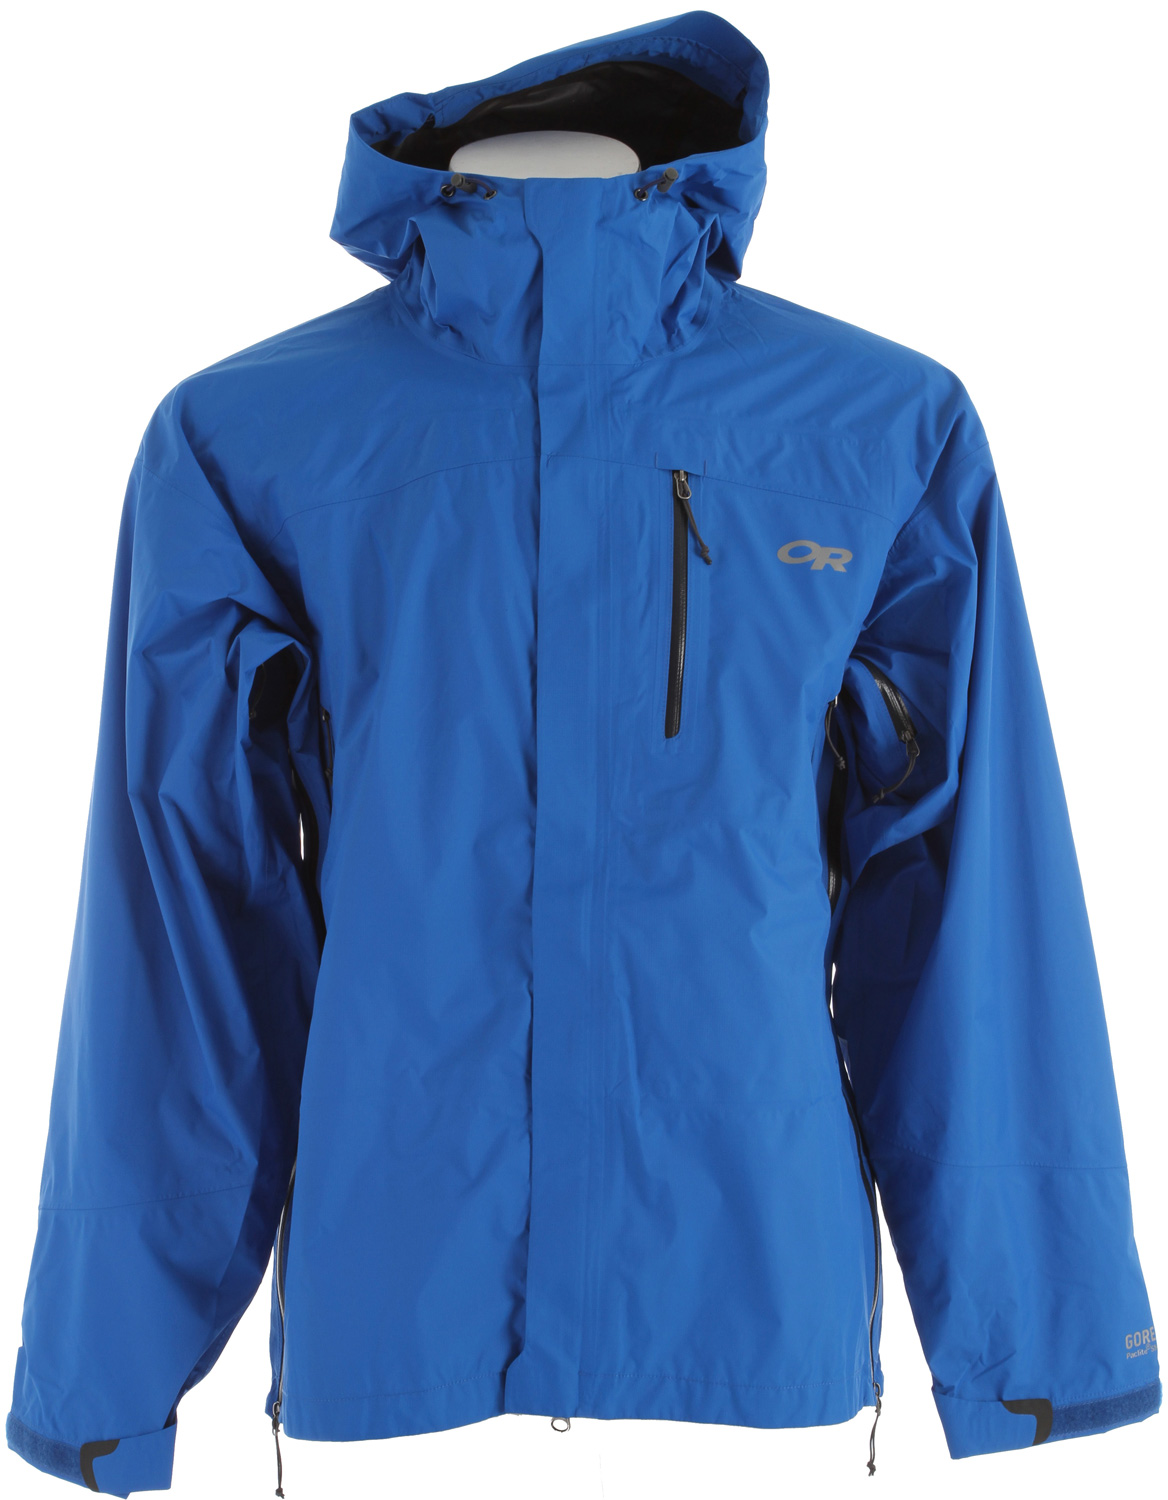 Key Features of the Outdoor Research Foray Shell Jacket: Lightweight, waterproof/breathable, 3-layer 40D GORE-TEX® Paclite® fabric Fully seam taped Fully adjustable hood Double-separating front zipper with external stormflap Double-sliding, water-resistant TorsoFlo™ hem-to-bicep zippers Water-resistant zippers; napoleon pocket and hand pockets Zippered internal chest pocket doubles as stuff sack Elastic cuffs with hook/loop tabs Dual drawcord hem adjustments - $189.95